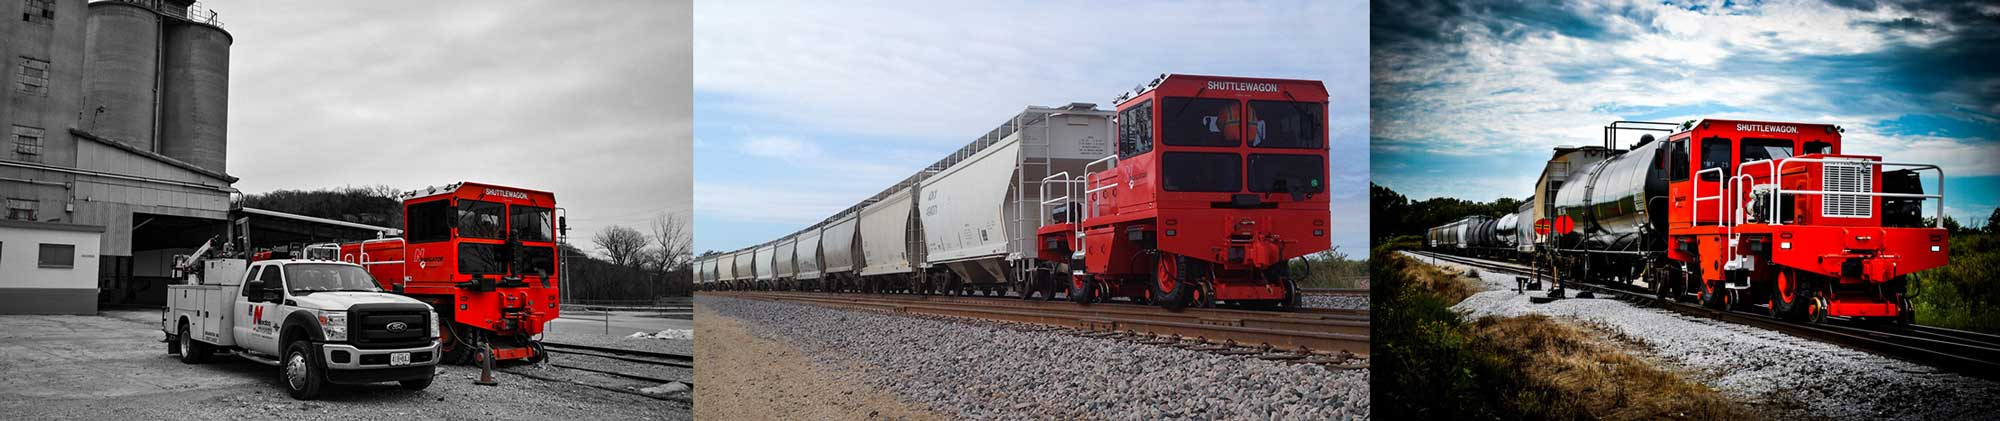 Shuttlewagon Rentals - Rent a Mobile Railcar Mover from us - Nationwide Fleet of mobile railcar movers for rent - trackmobile, railking, switchmaster, navigator, electric series, commander - railway vehicle mover